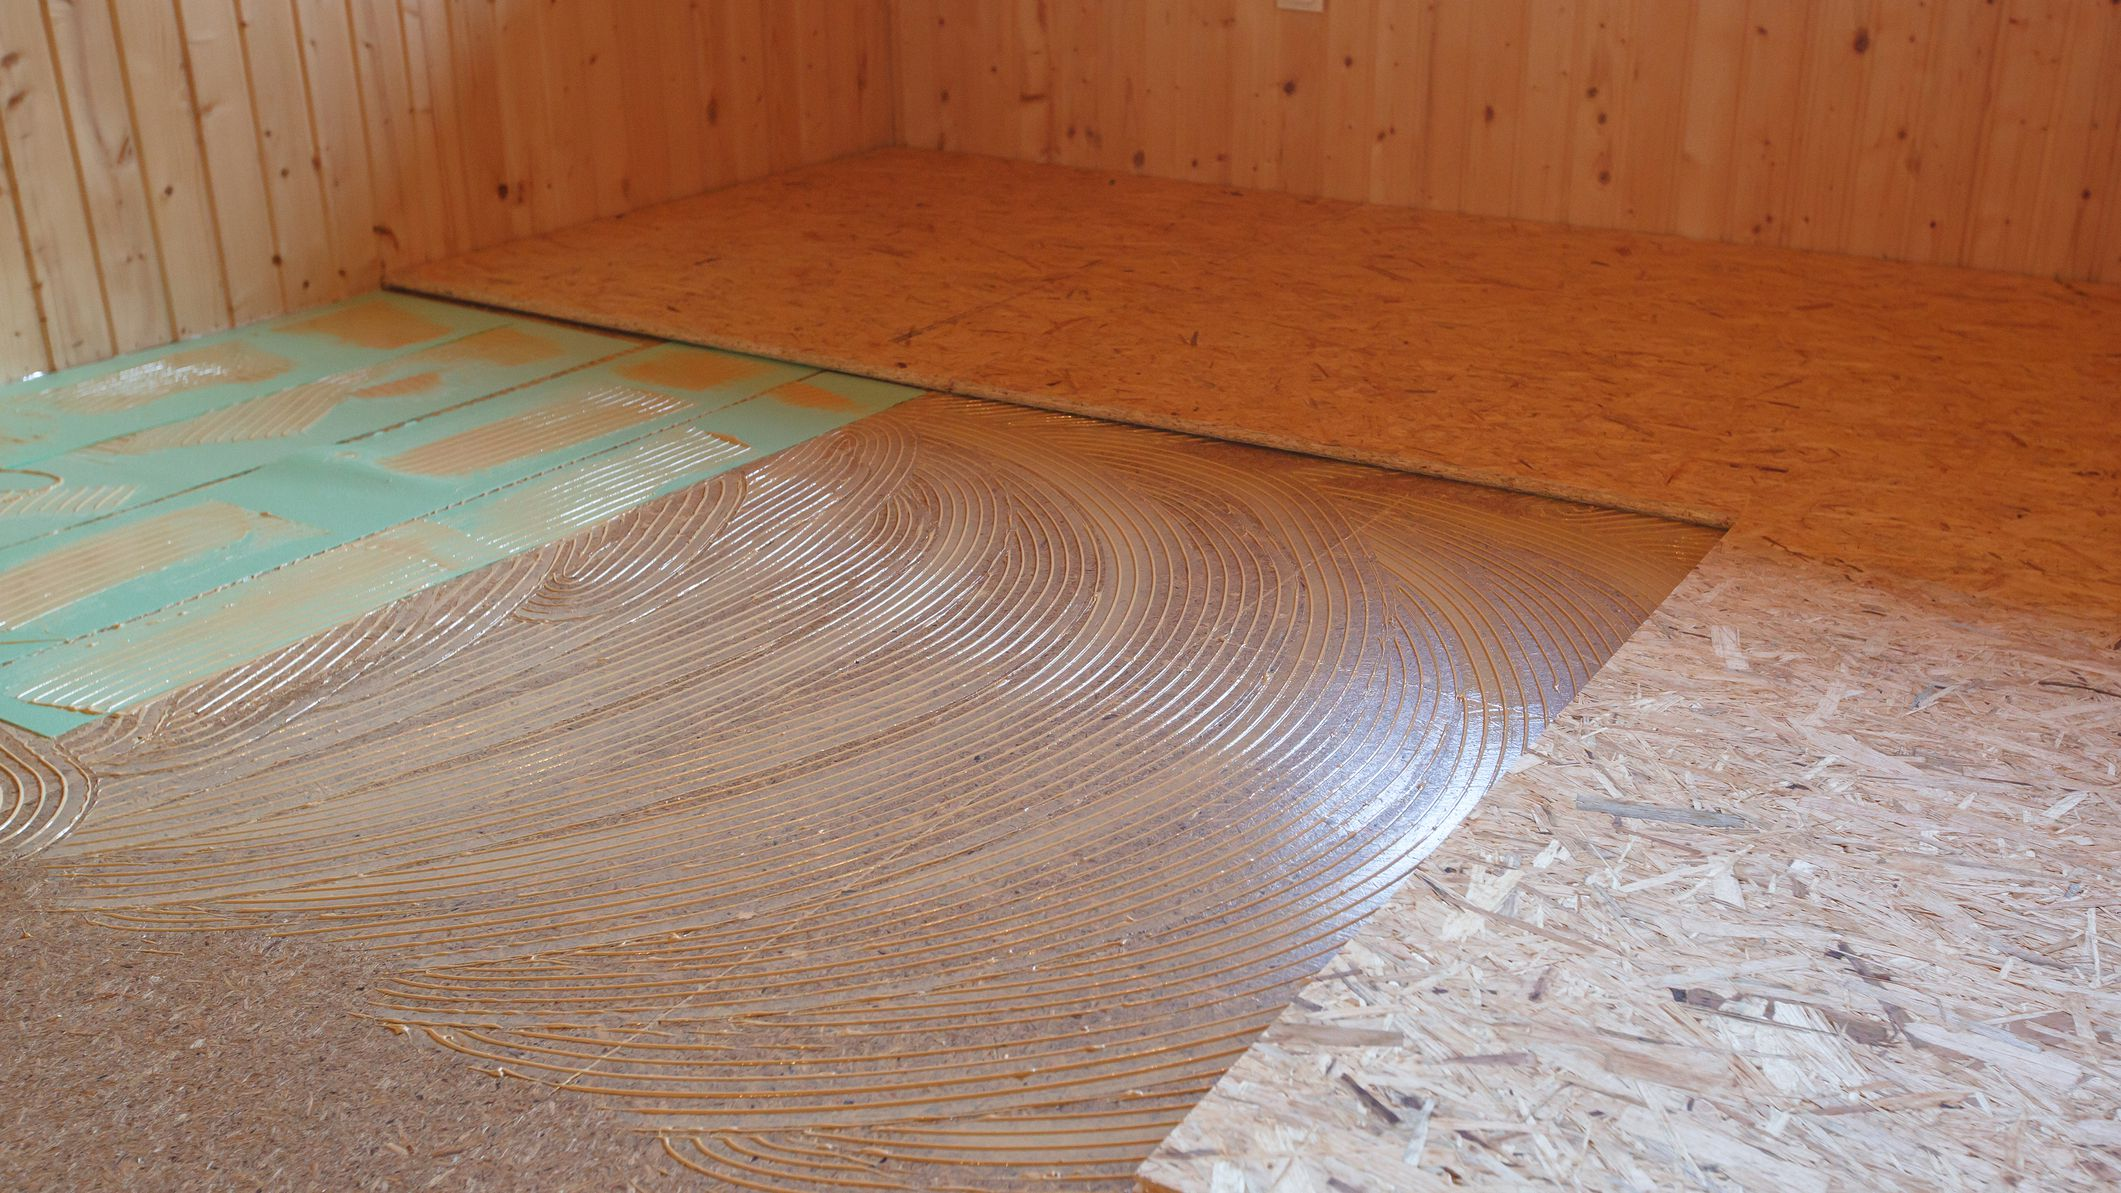 Subfloor Materials In Construction Projects